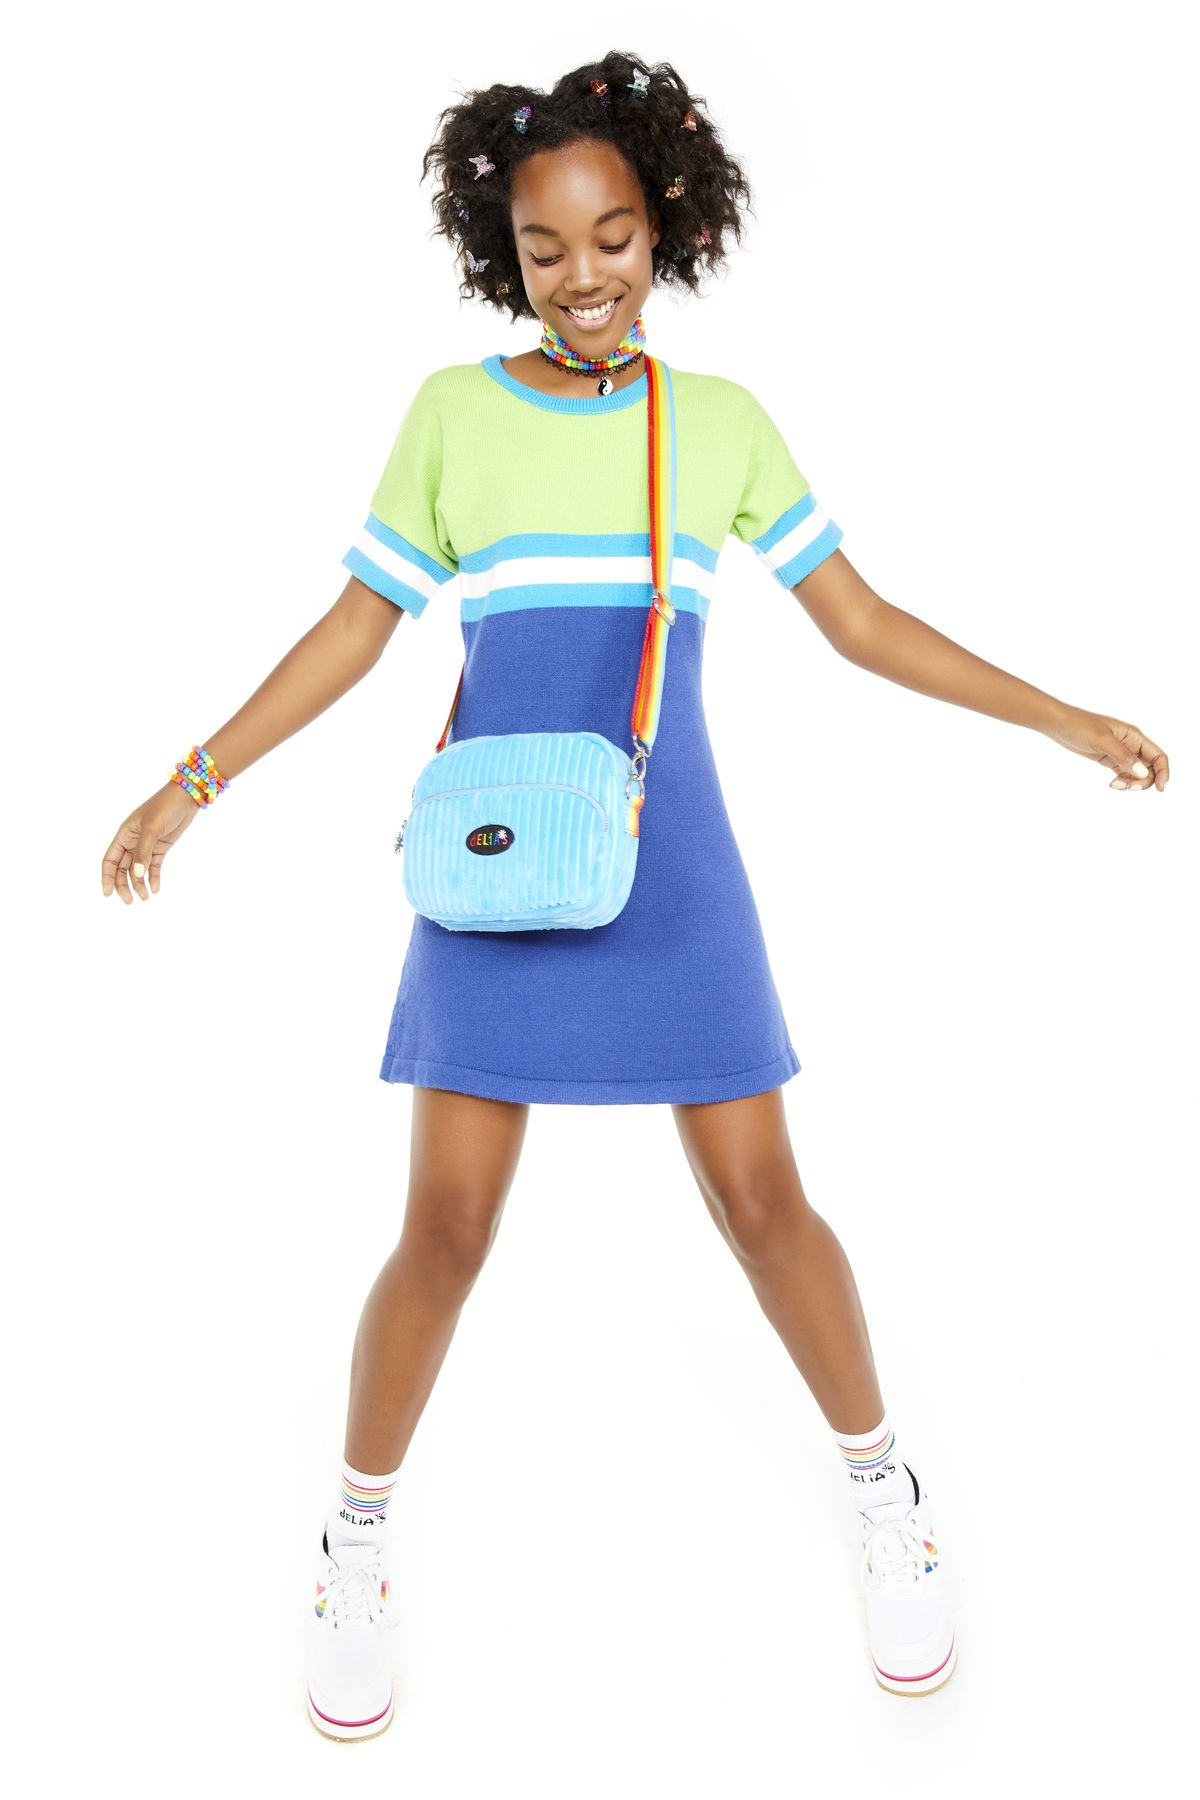 A model wears a blue and green sweater dress.